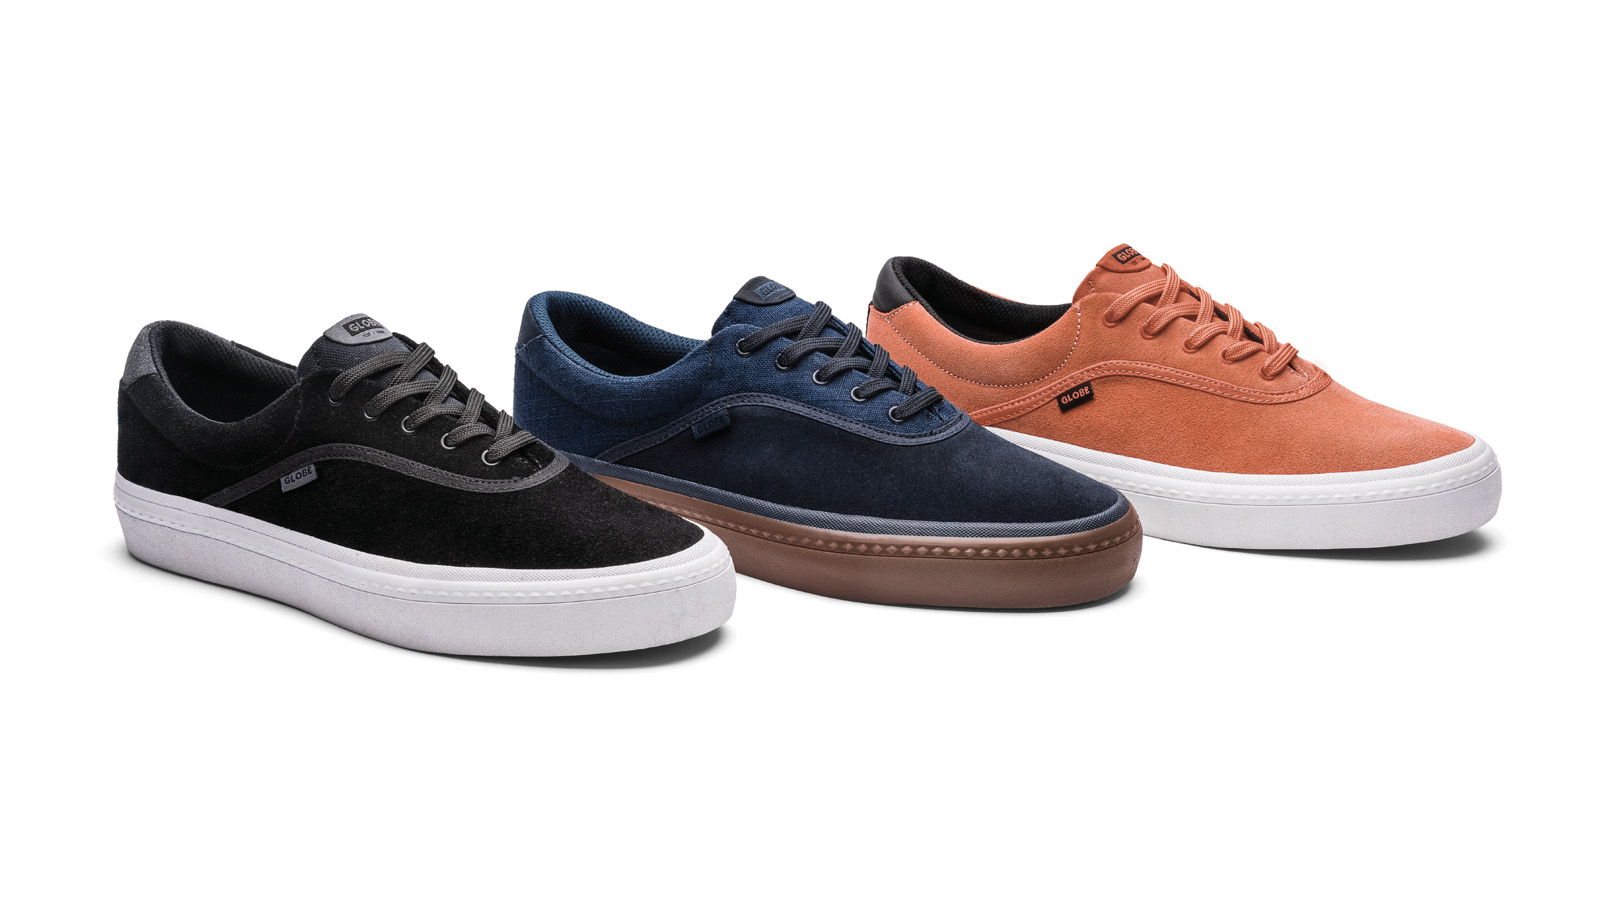 Skate shoes difference - Putting Things In Perspective How Have Skate Shoes Developed Over The Past 5 Years How Are This Seasons S Shoes Different From Fw2011